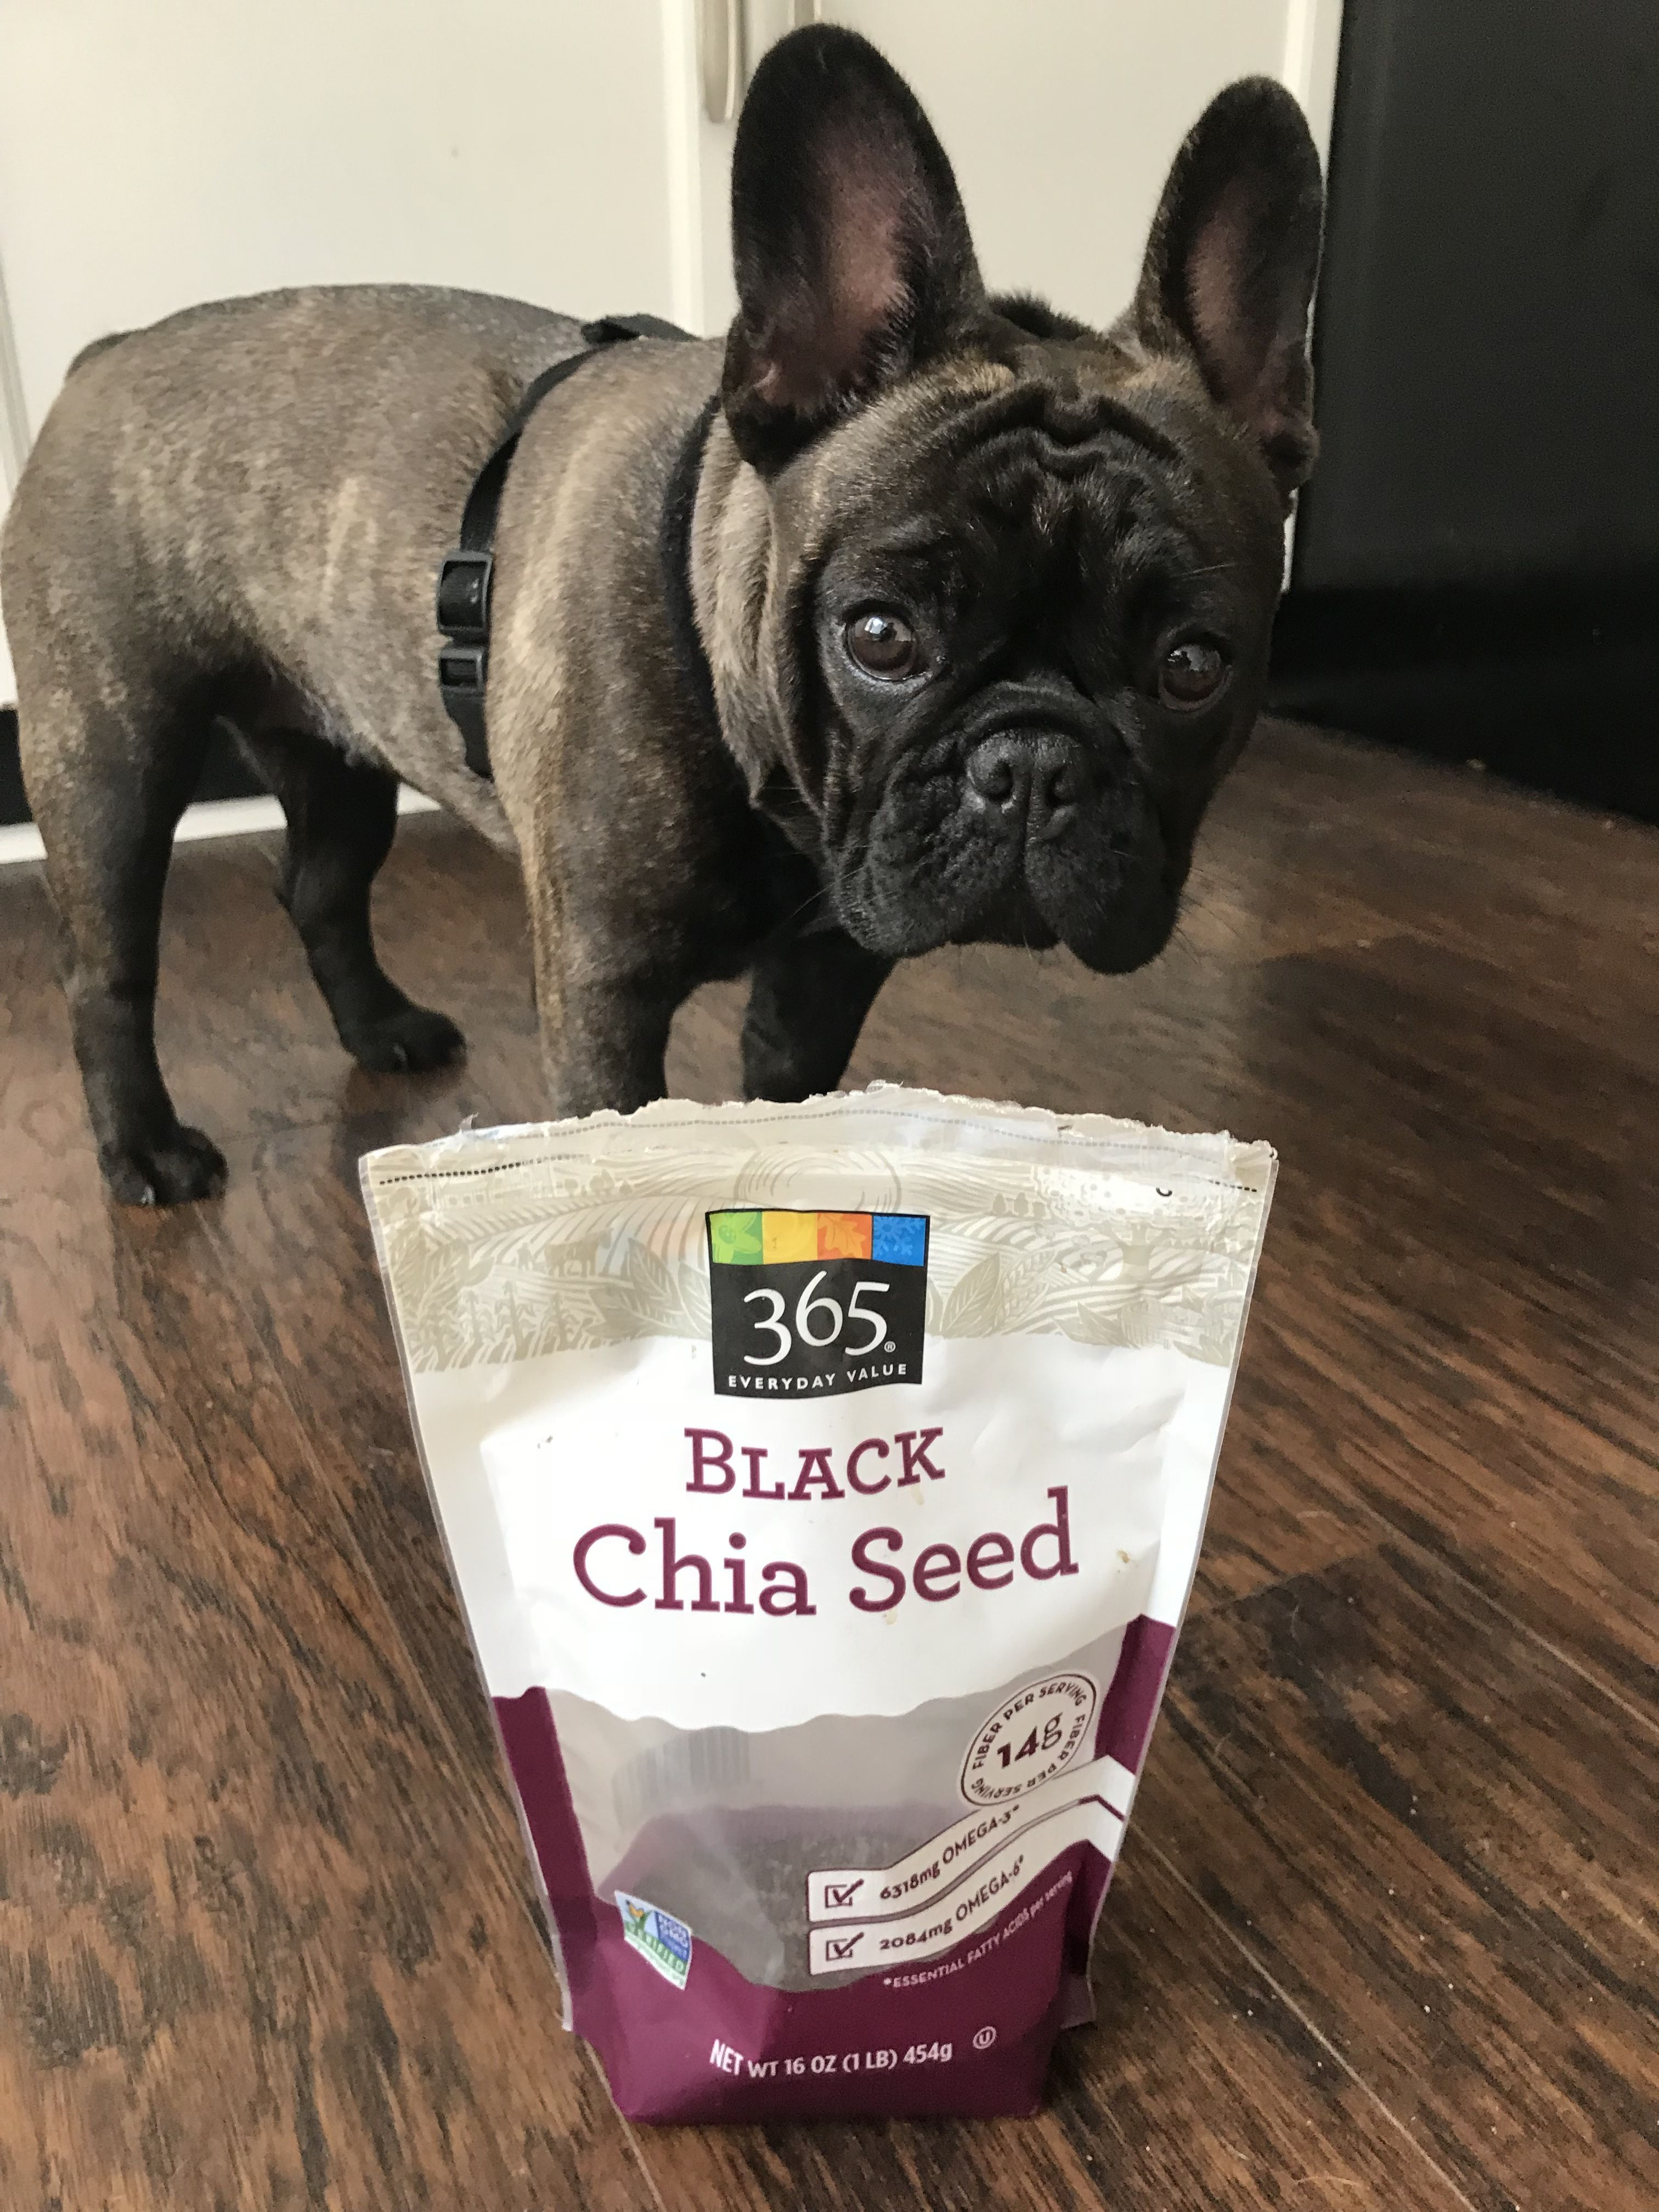 Lola Loves Her Black Chia Seeds From 365 Whole Foods French